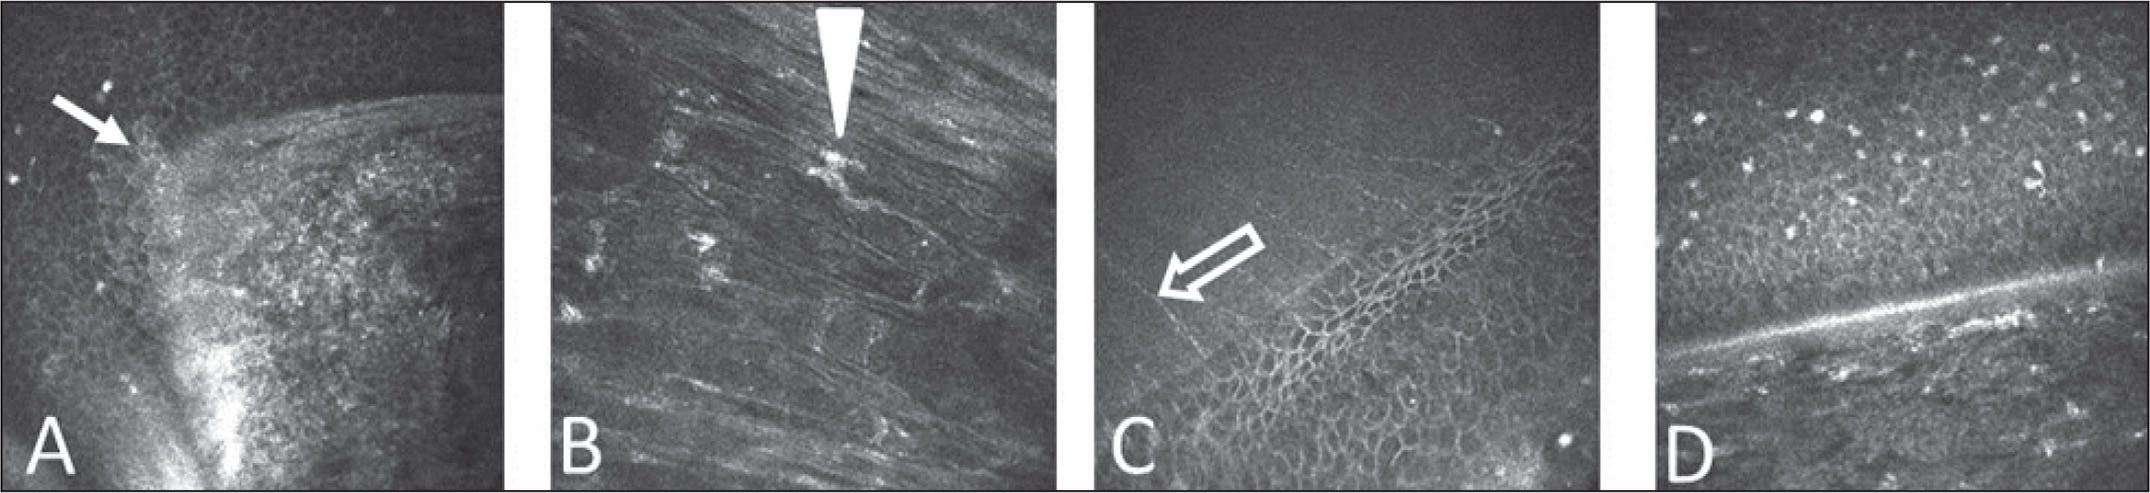 In vivo confocal microscopic images of the corneal graft–host junction zone in Fuchs' dystrophy after (A) excimer laser-assisted penetrating keratoplasty (ELAK) and (B) femtosecond laser-assisted keratoplasty (FLAK) in keratoconus after (C) ELAK and (D) FLAK. Orientation tooth after ELAK is indicated with a white arrow (A). Some fibroblasts (arrowhead) in the (B) fibrotic tissue, (C) gracile subepithelial nerve plexi, (D) and inflammatory cells in the interface and epithelial cells are visible.